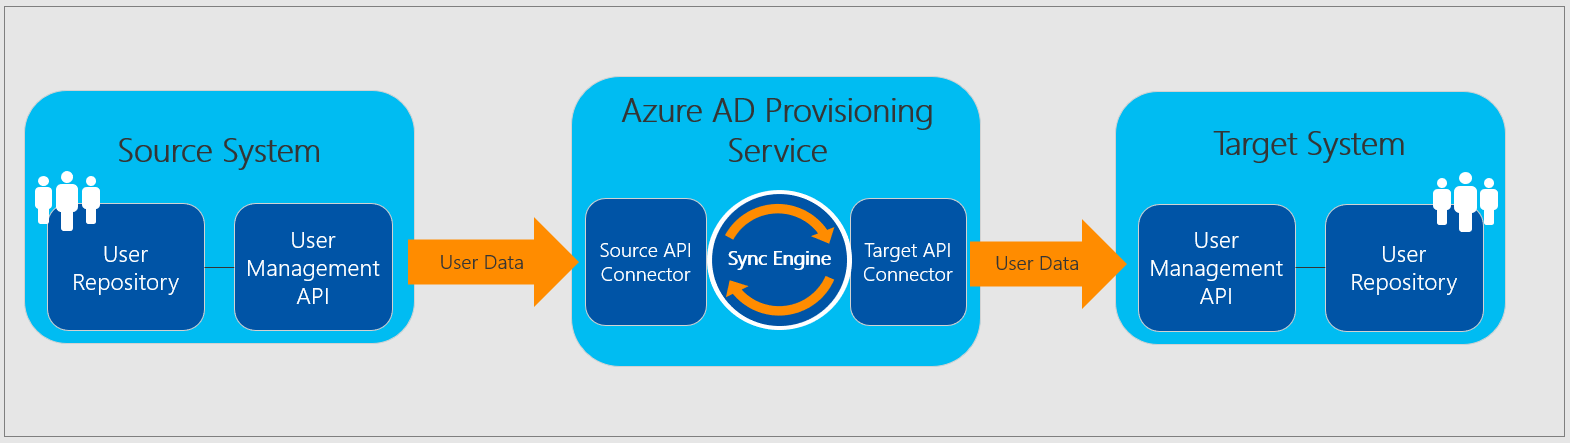 Automated SaaS app user provisioning in Azure AD | Microsoft